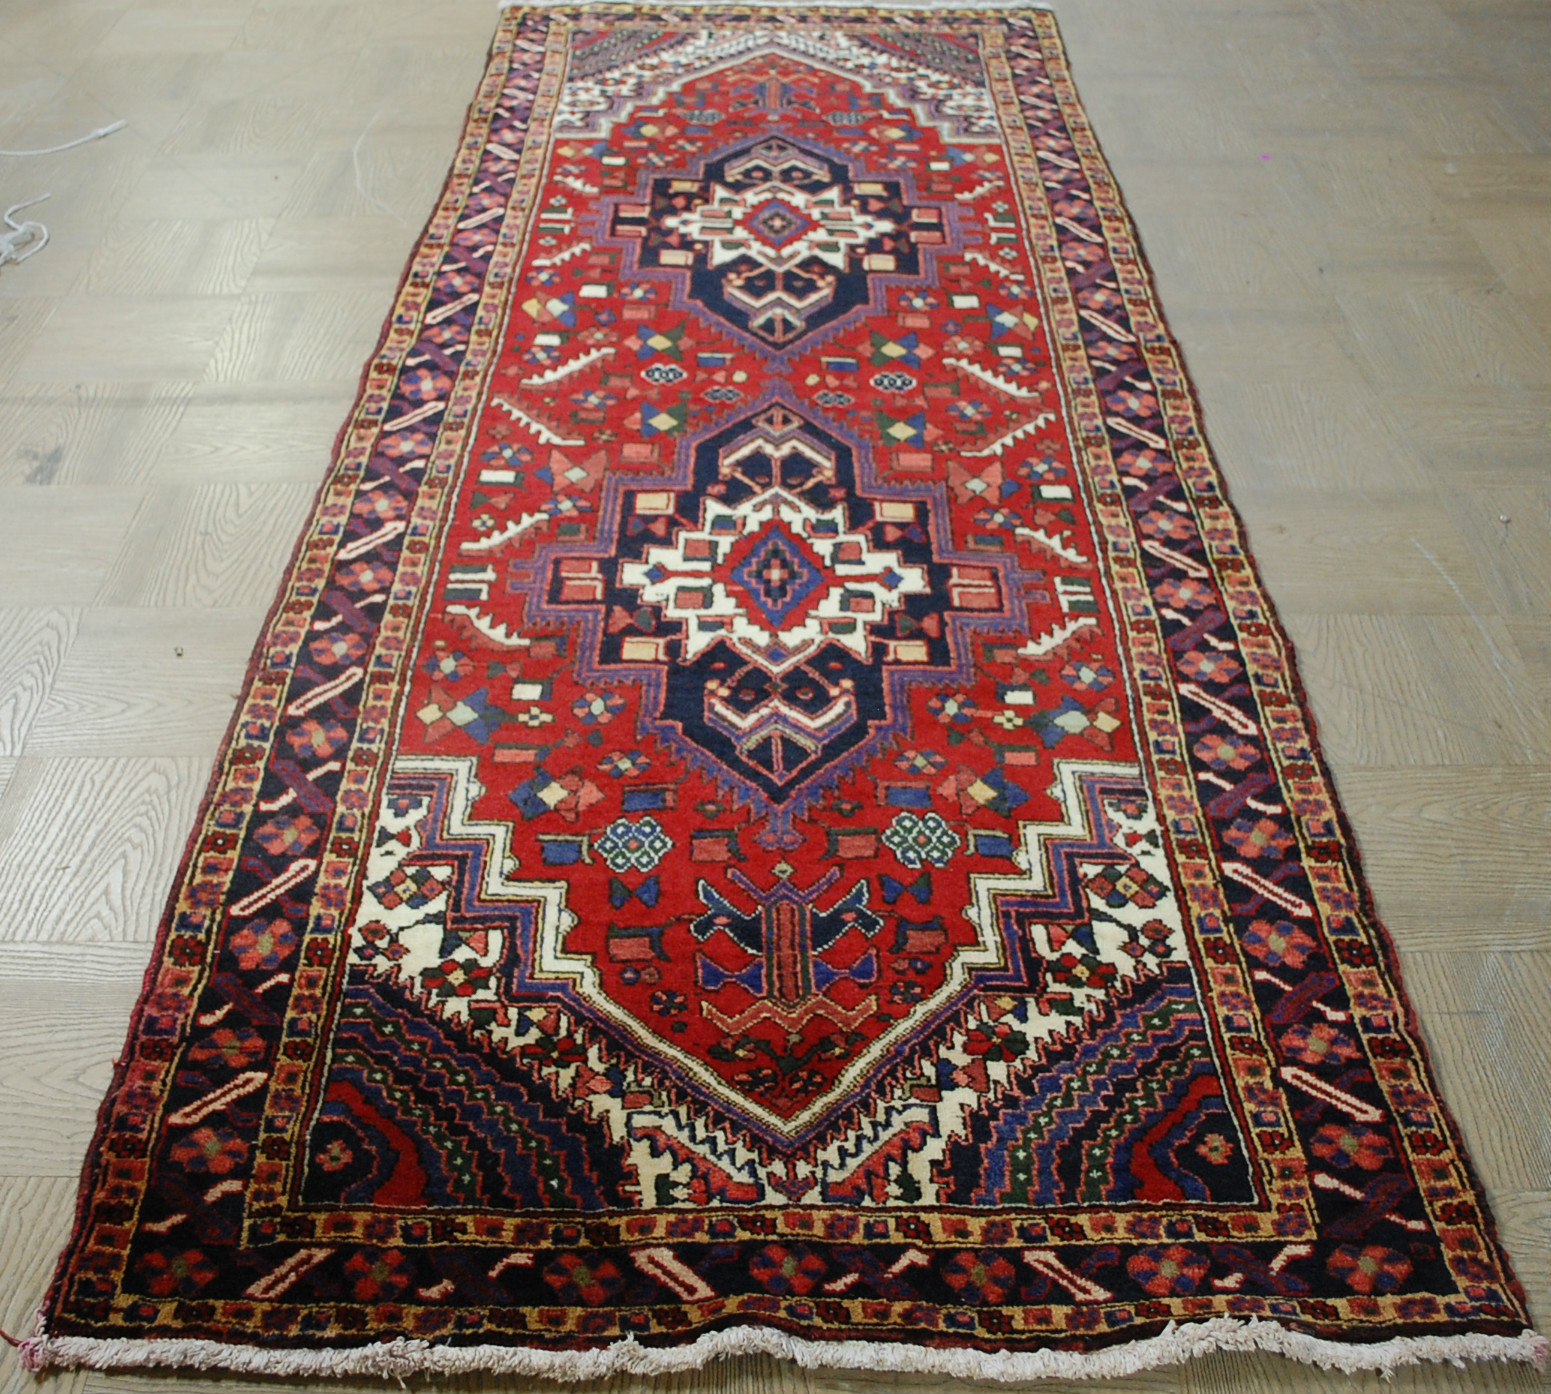 Persian Rugs From Iran: Because It's Awesome: Decor // Persian Rugs